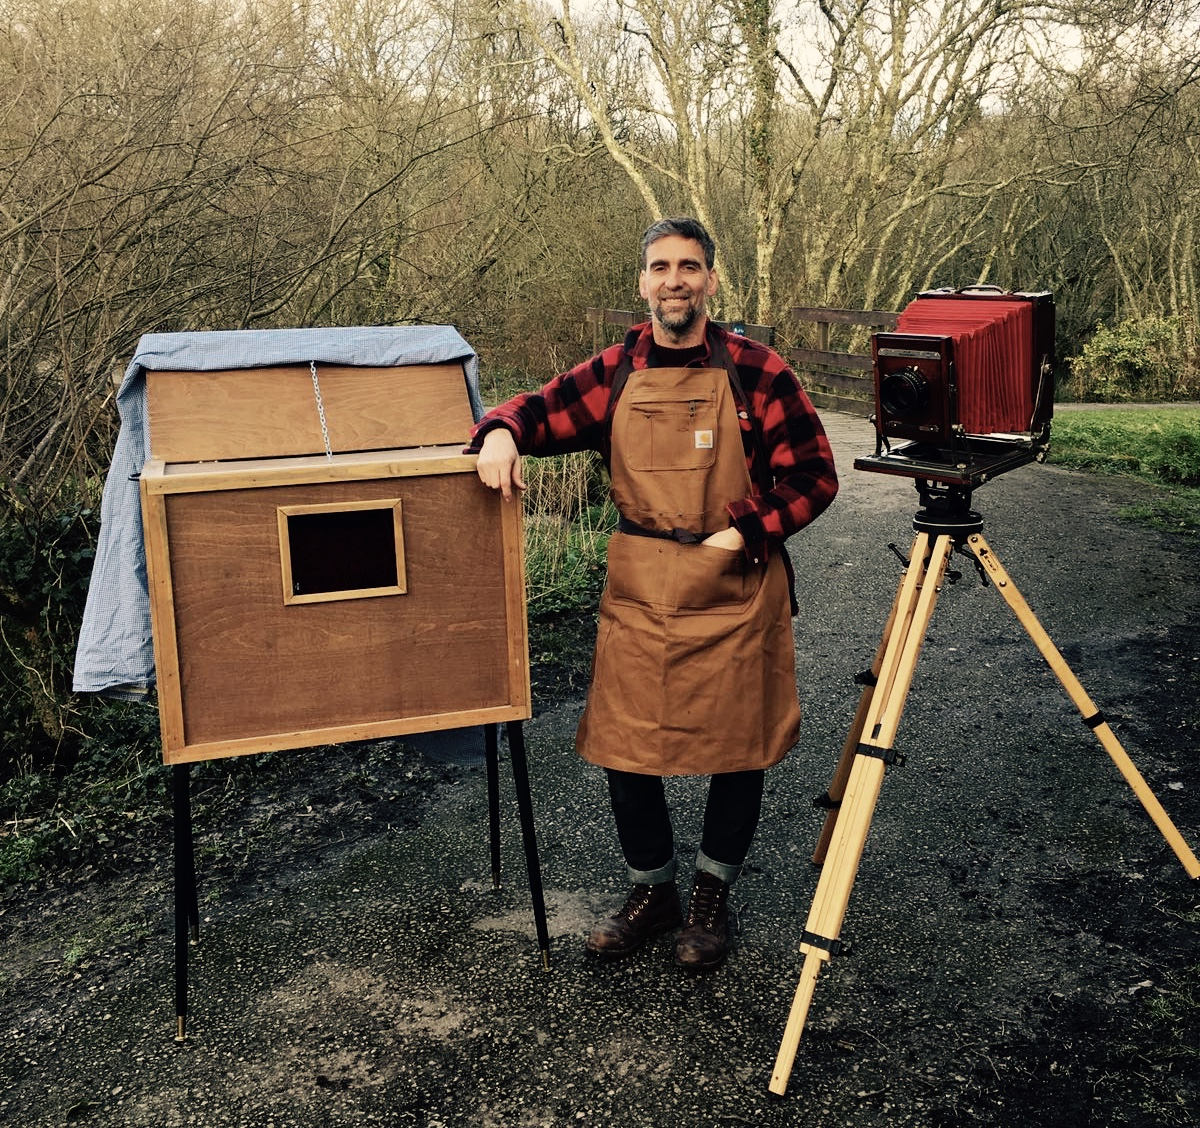 Al Forrester with his Mobile Wet Plate Studio on location in Tywardreath, Cornwall